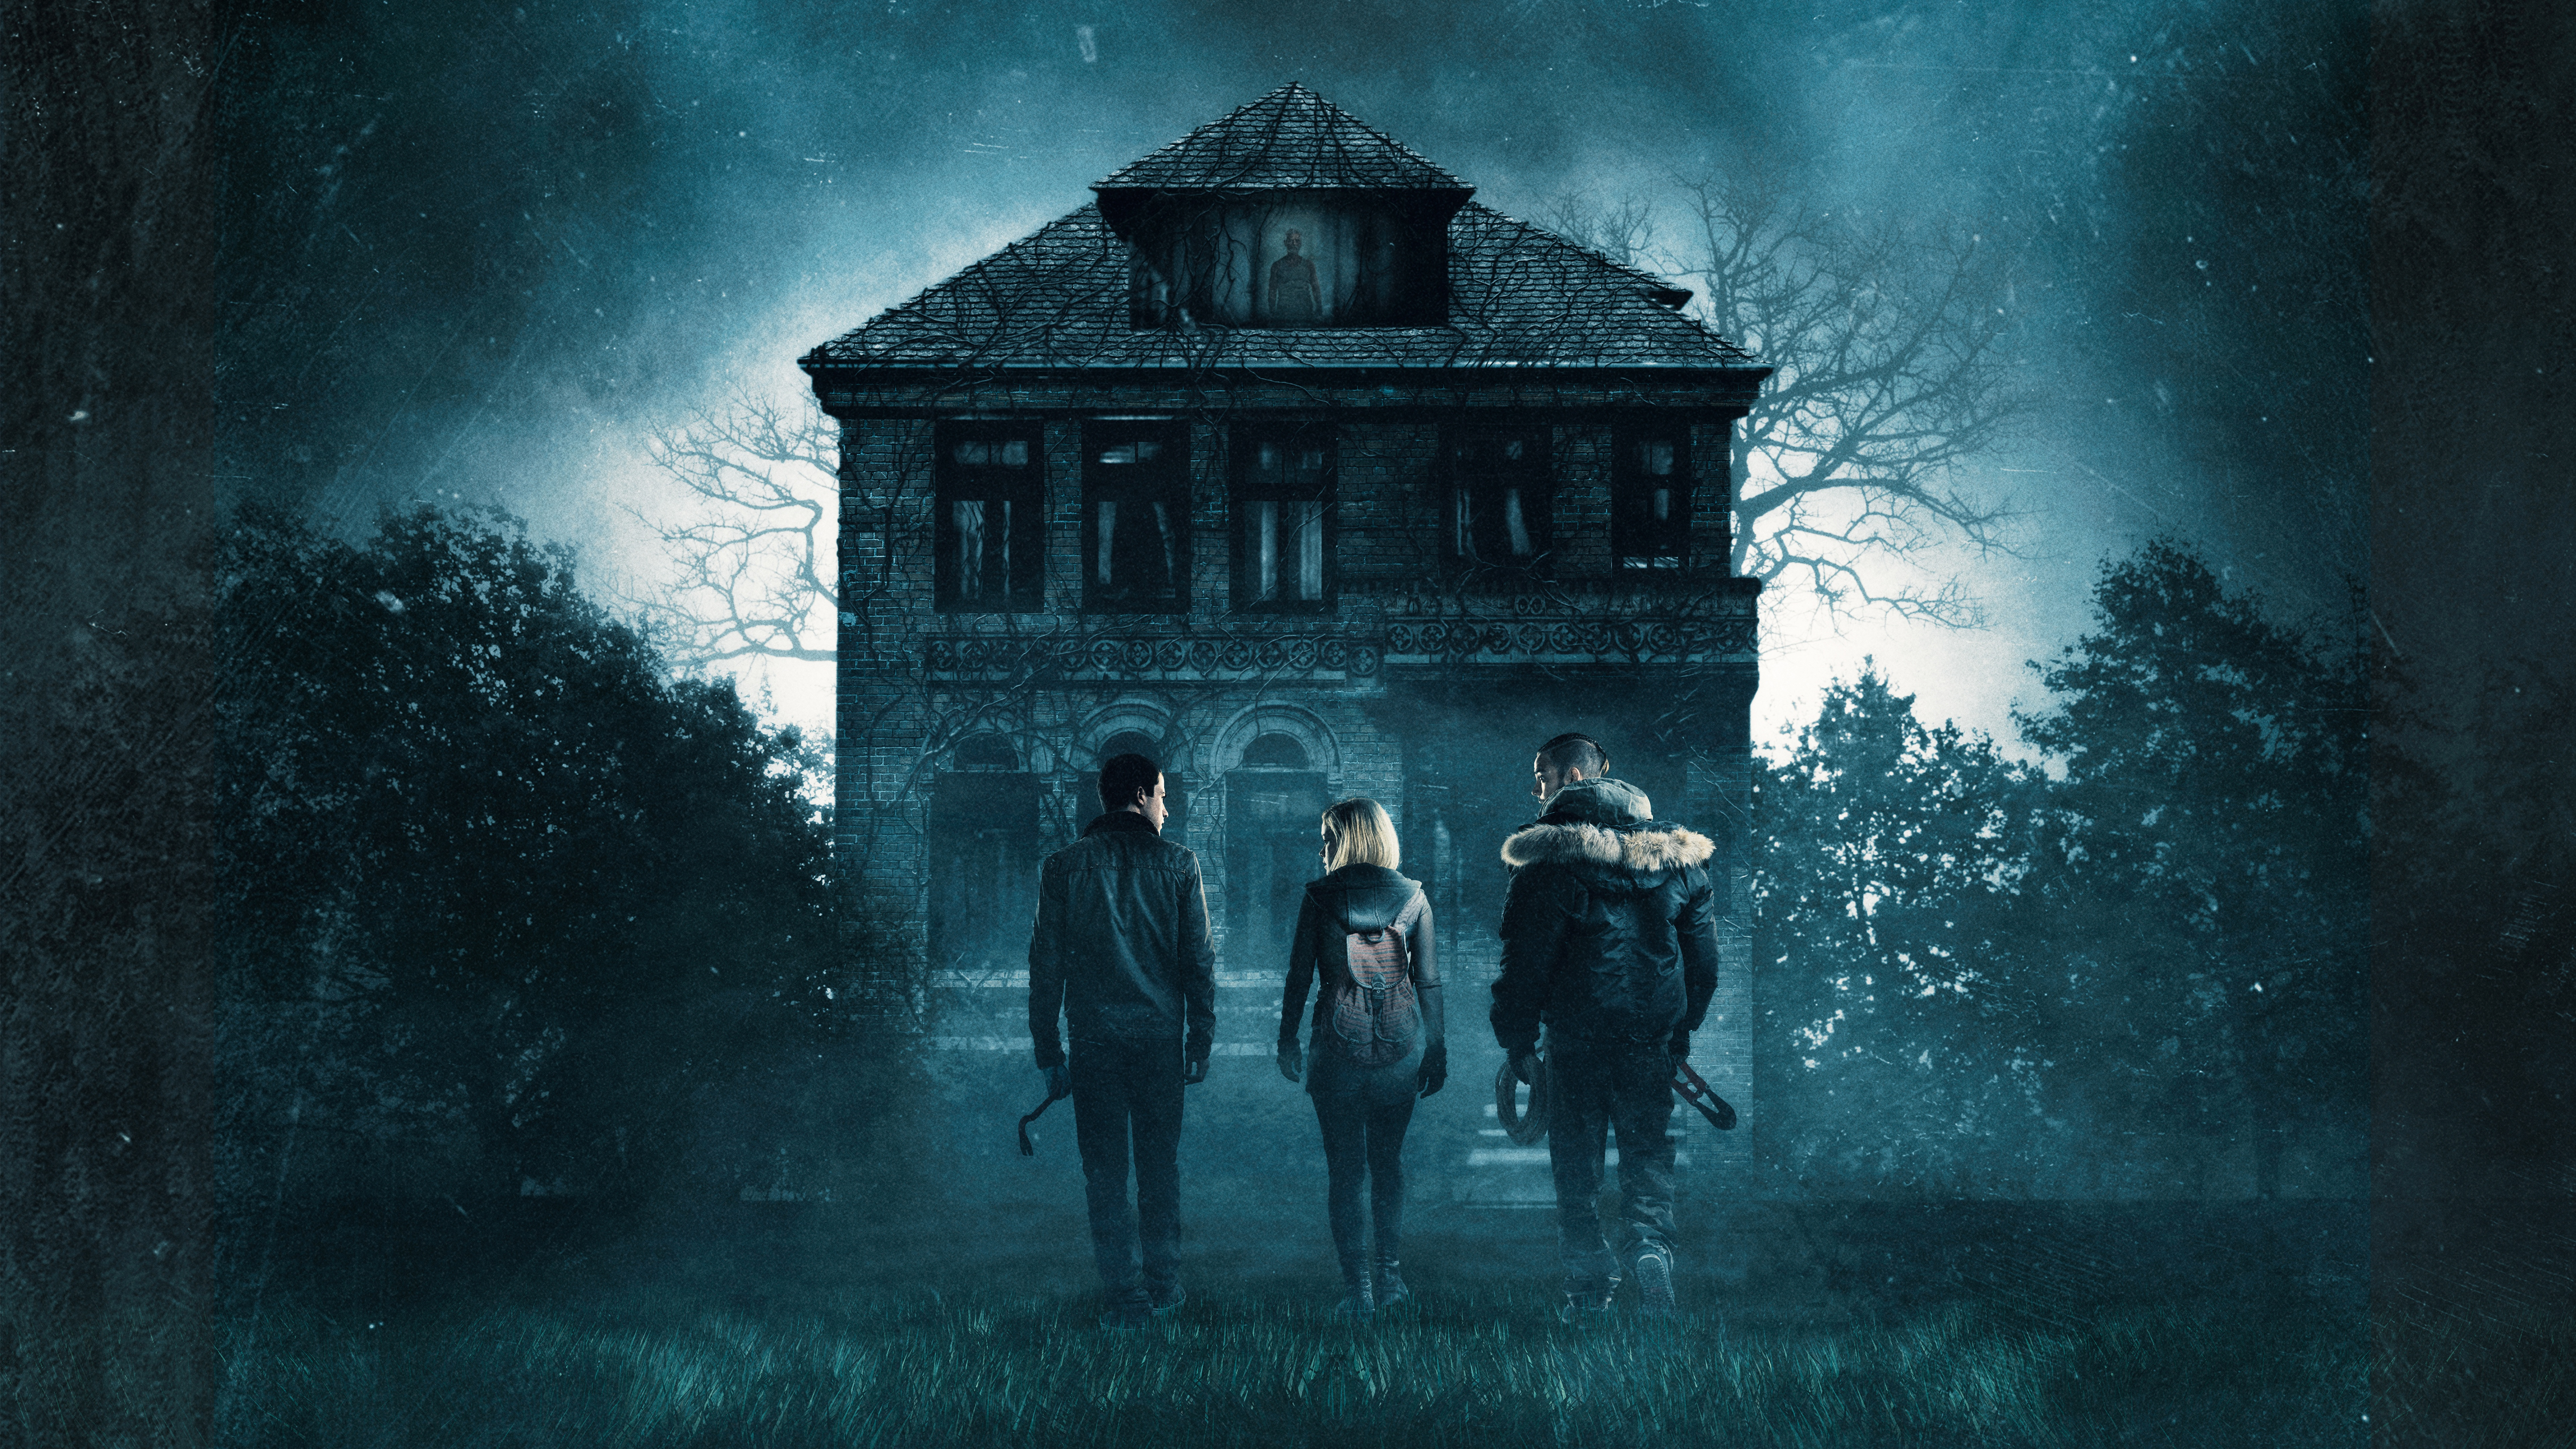 dont breathe 2016 horror movie wallpapers in jpg format for free